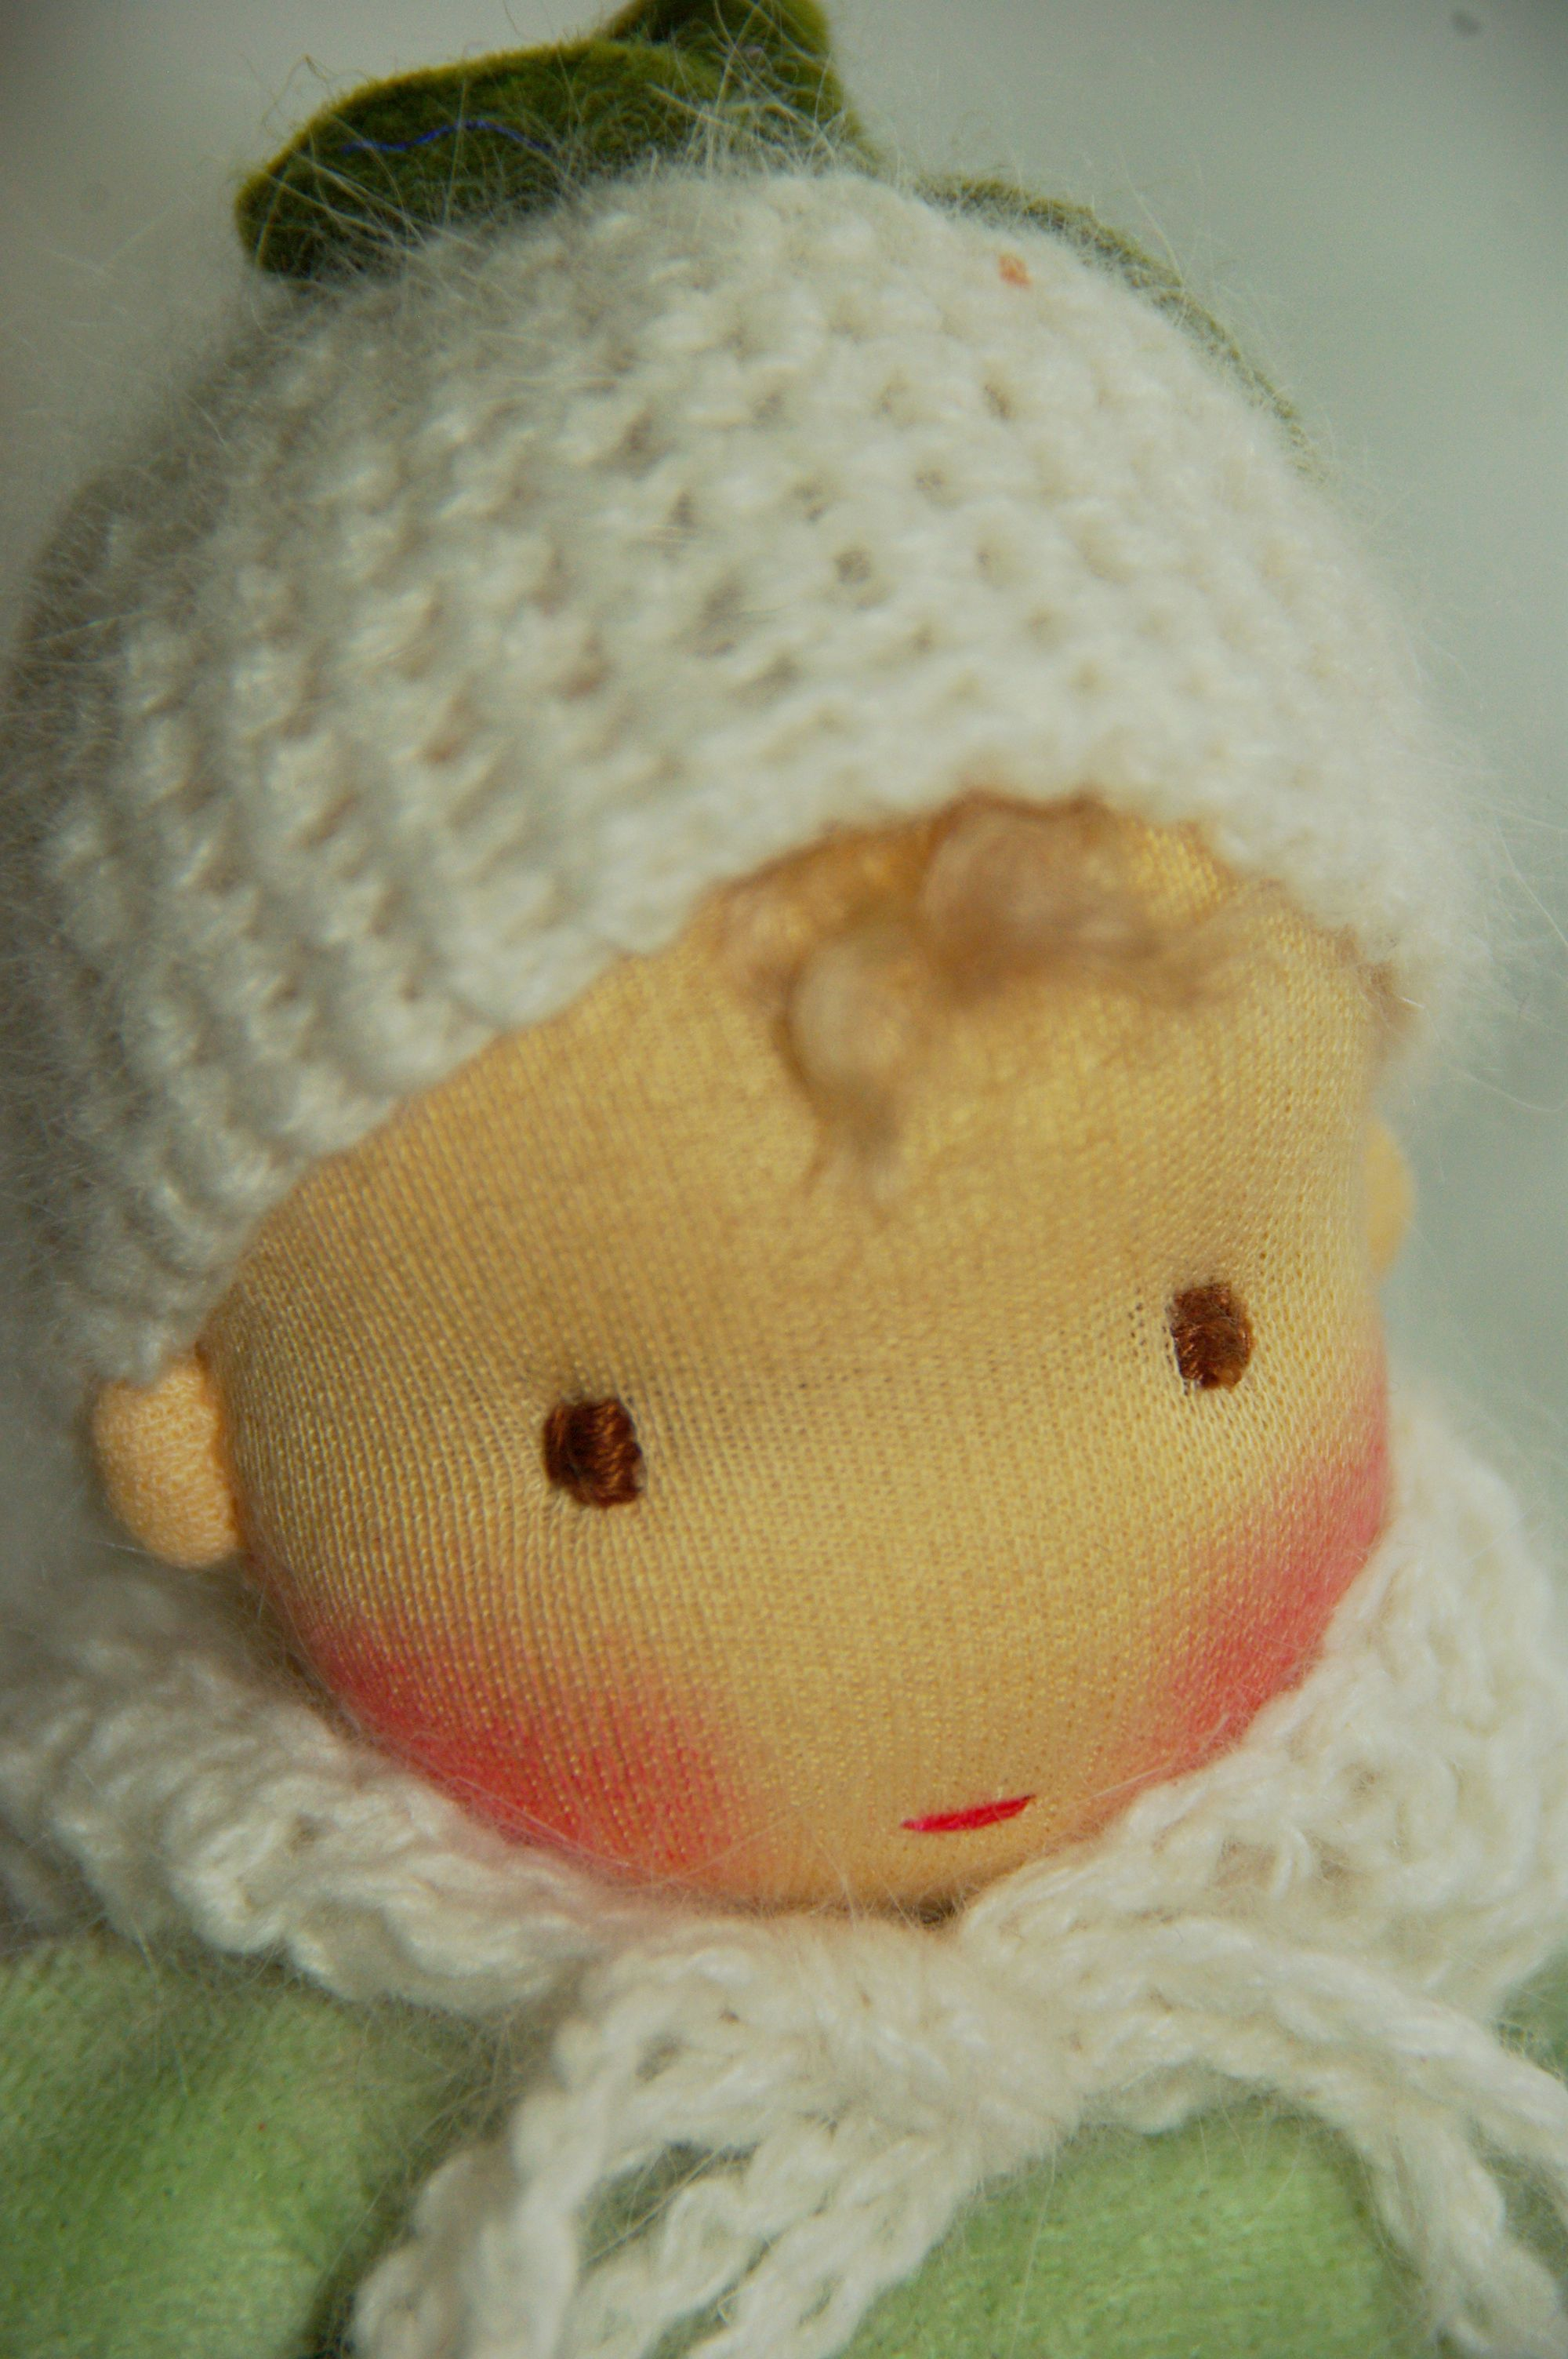 little Waldorf baby doll, lovingly handmade by Atelier Lavendel is made with all natural, organic materials. ECO friendly Handmade in Germany.